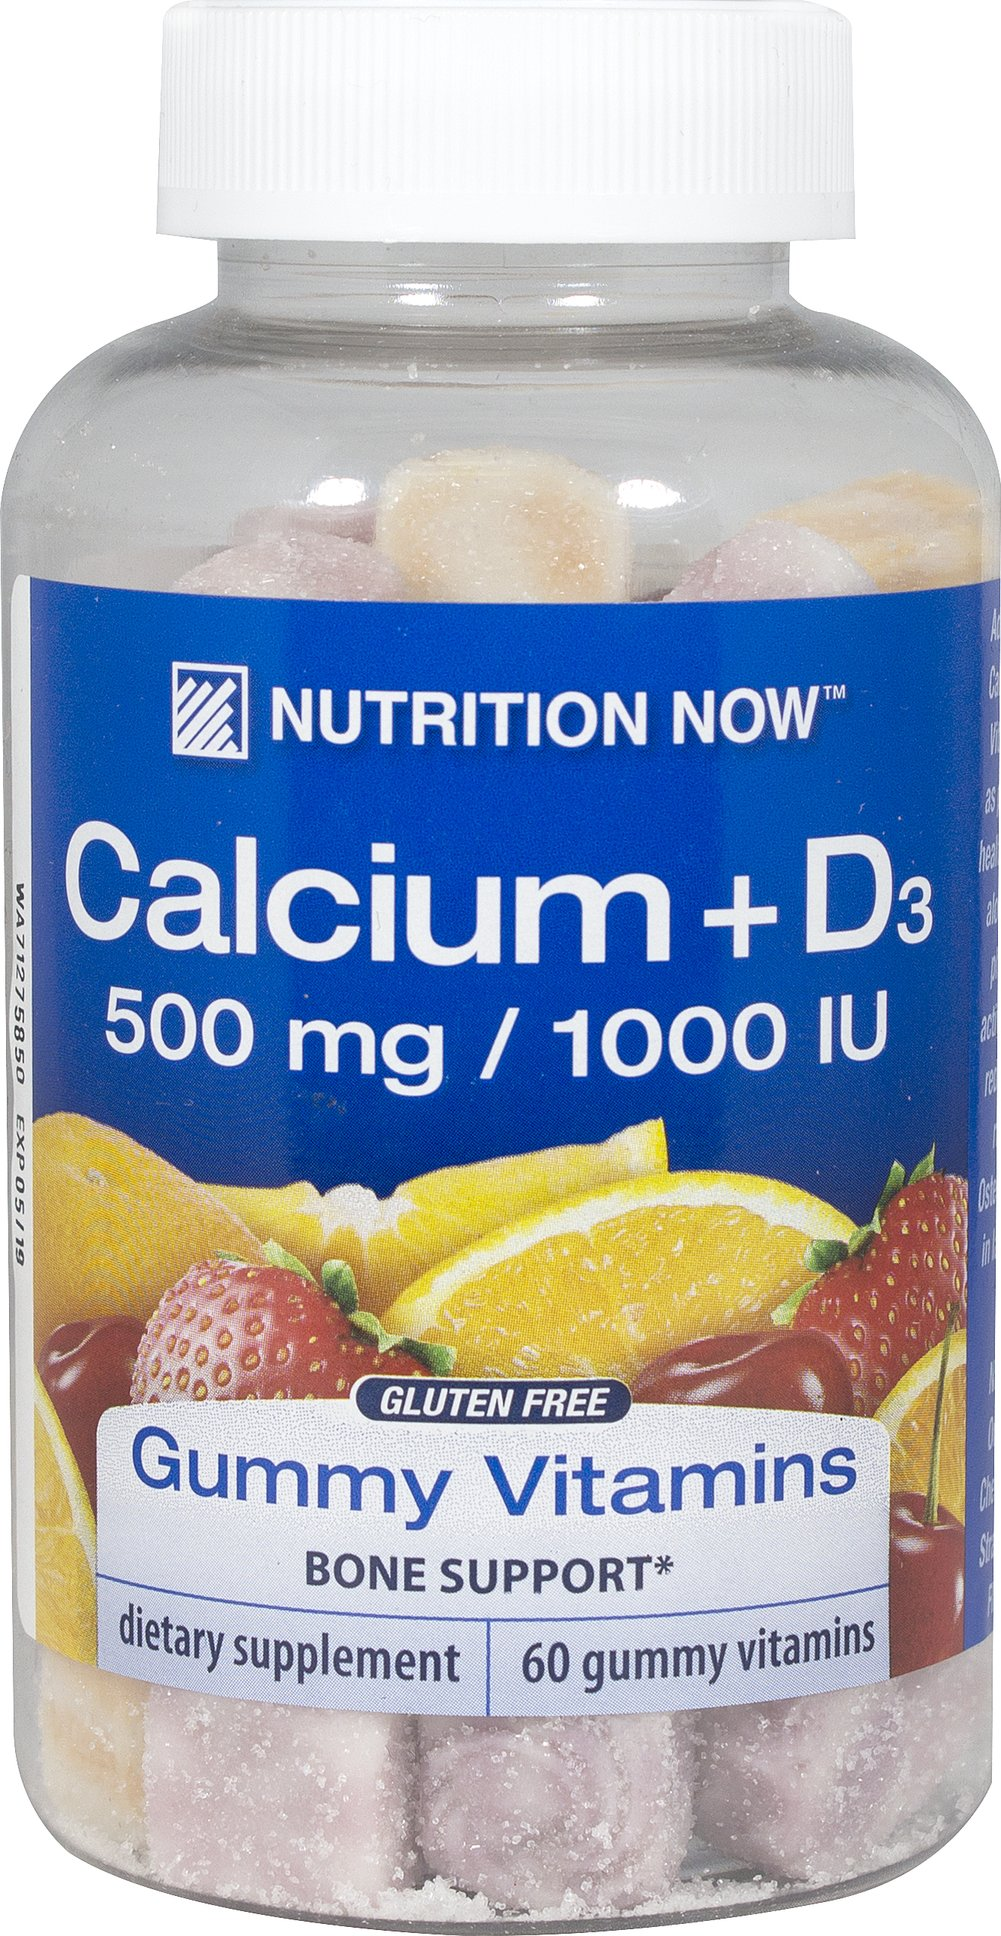 Calcium Gummy Vitamins <b><p>From the Manufacturer's Label:</b></p> <p>Nutrition Now Calcium Gummy Vitamins for adults with Vitamin D contains as much calcium as two 6oz glasses of milk in each serving.  Naturally Flavored orange, cherry and strawberry gummy vitamins.</p> 60 Gummies